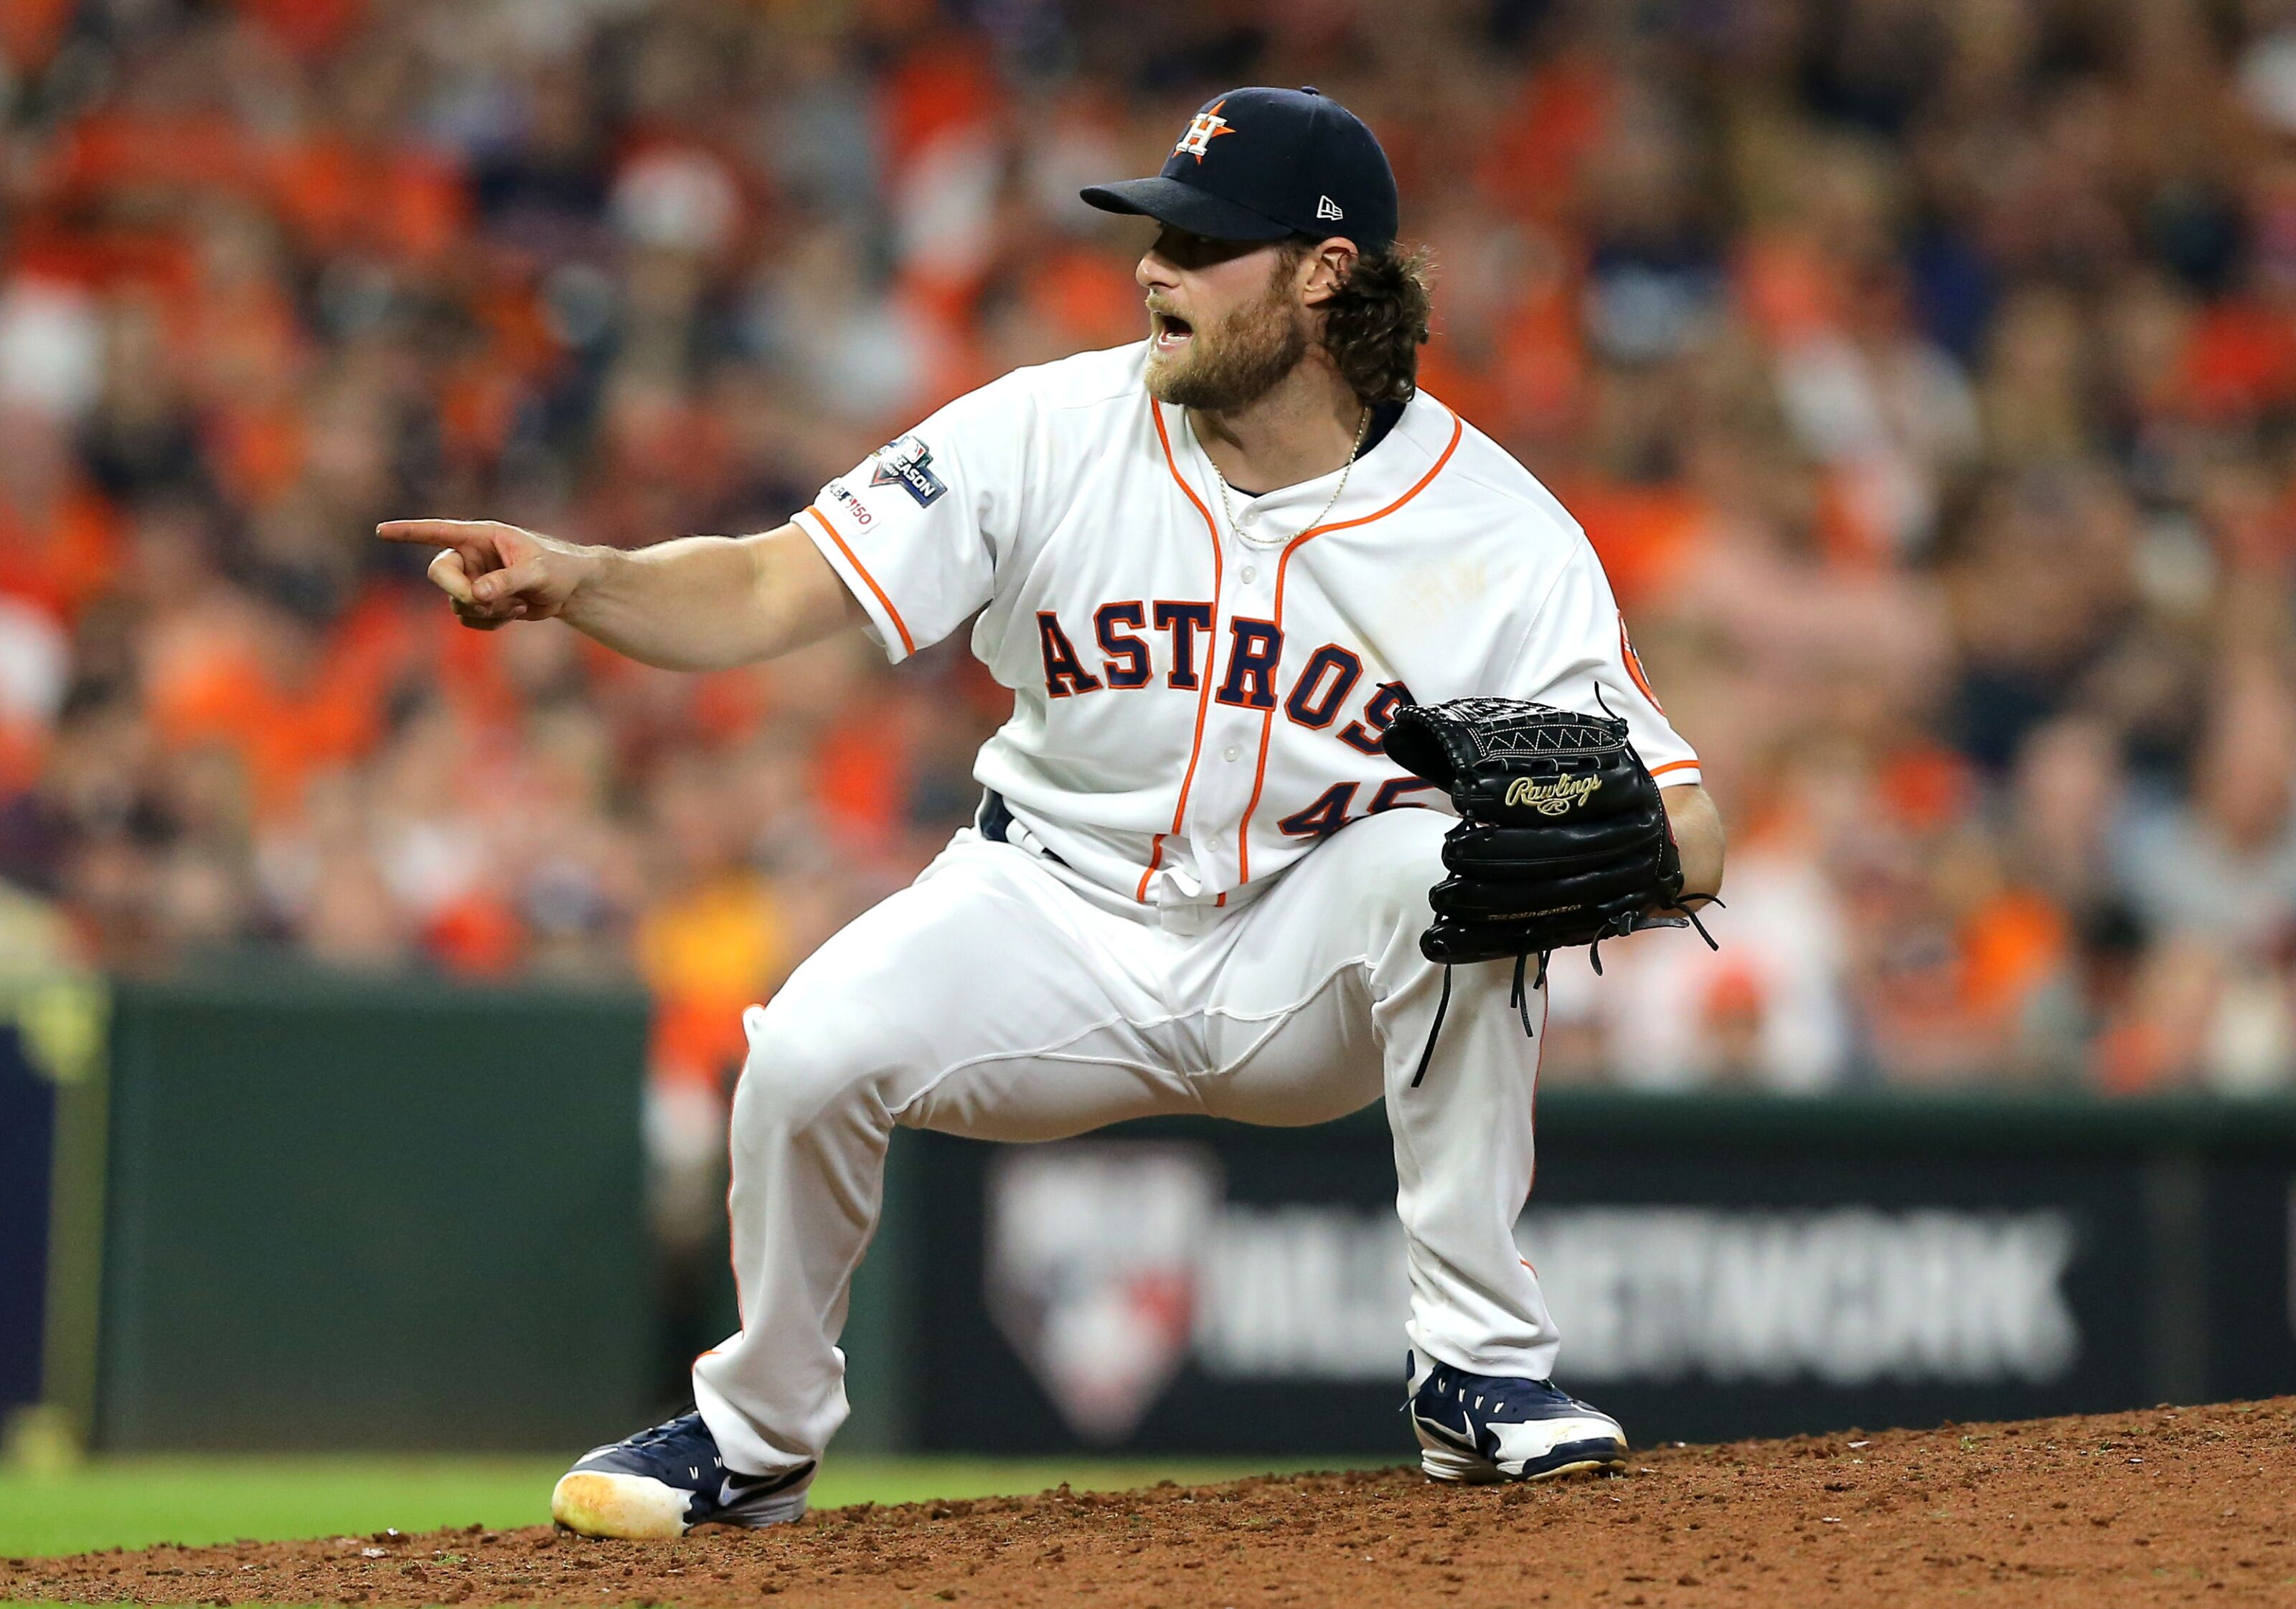 Why the San Francisco Giants should sign Gerrit Cole, not Madison Bumgarner